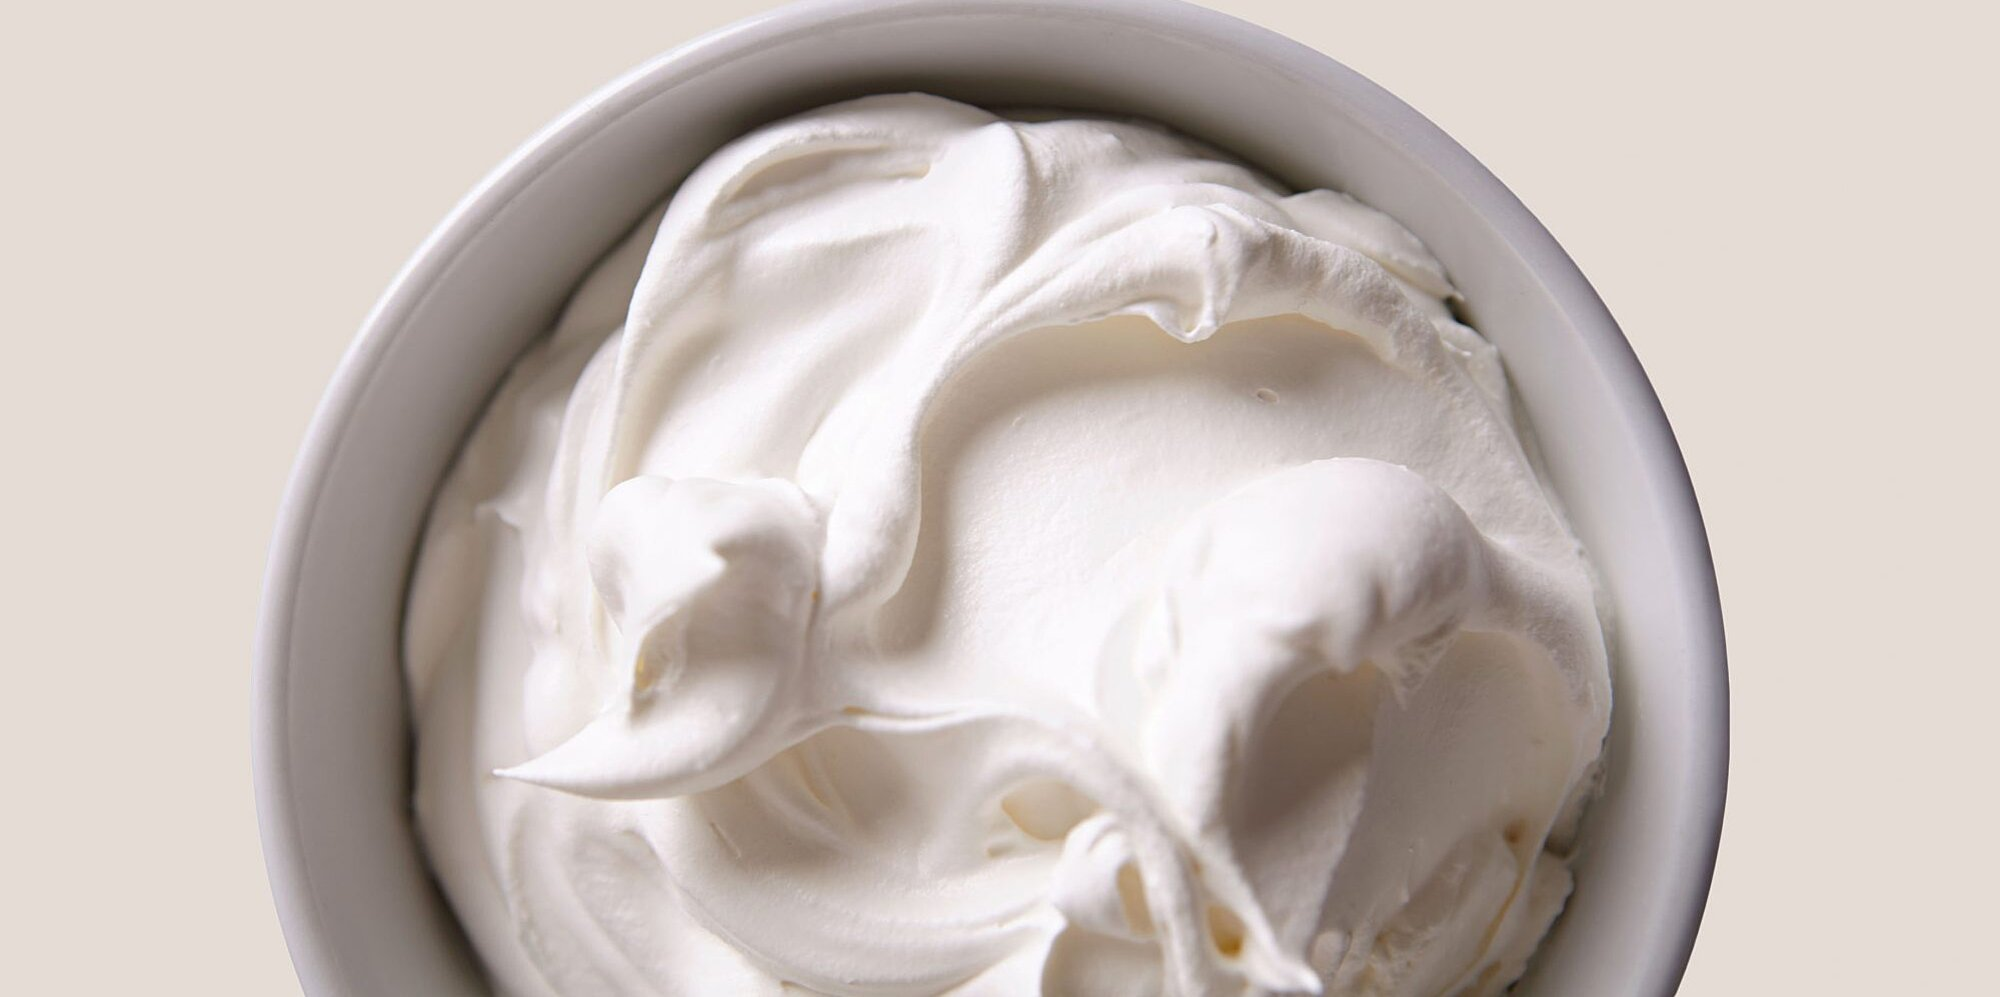 Understanding the Differences Between Heavy Cream, Whipping Cream, Light Cream, and Half-and-Half